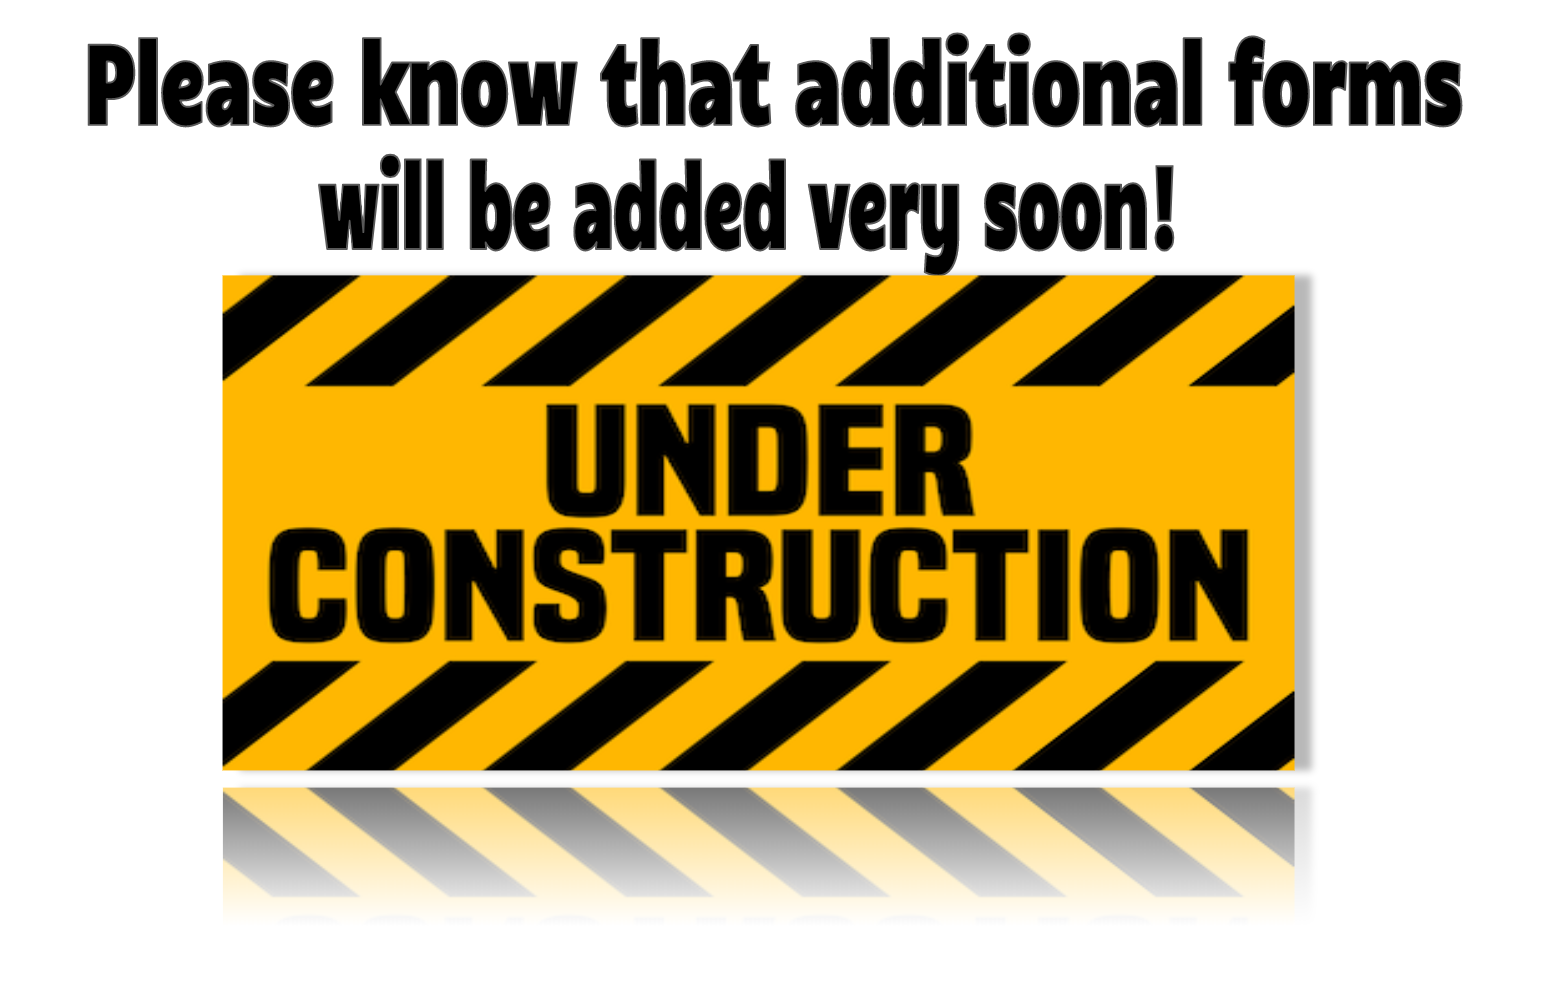 Message: Please know that additional forms will be added soon. An 'Under Construction' sign is also posted.